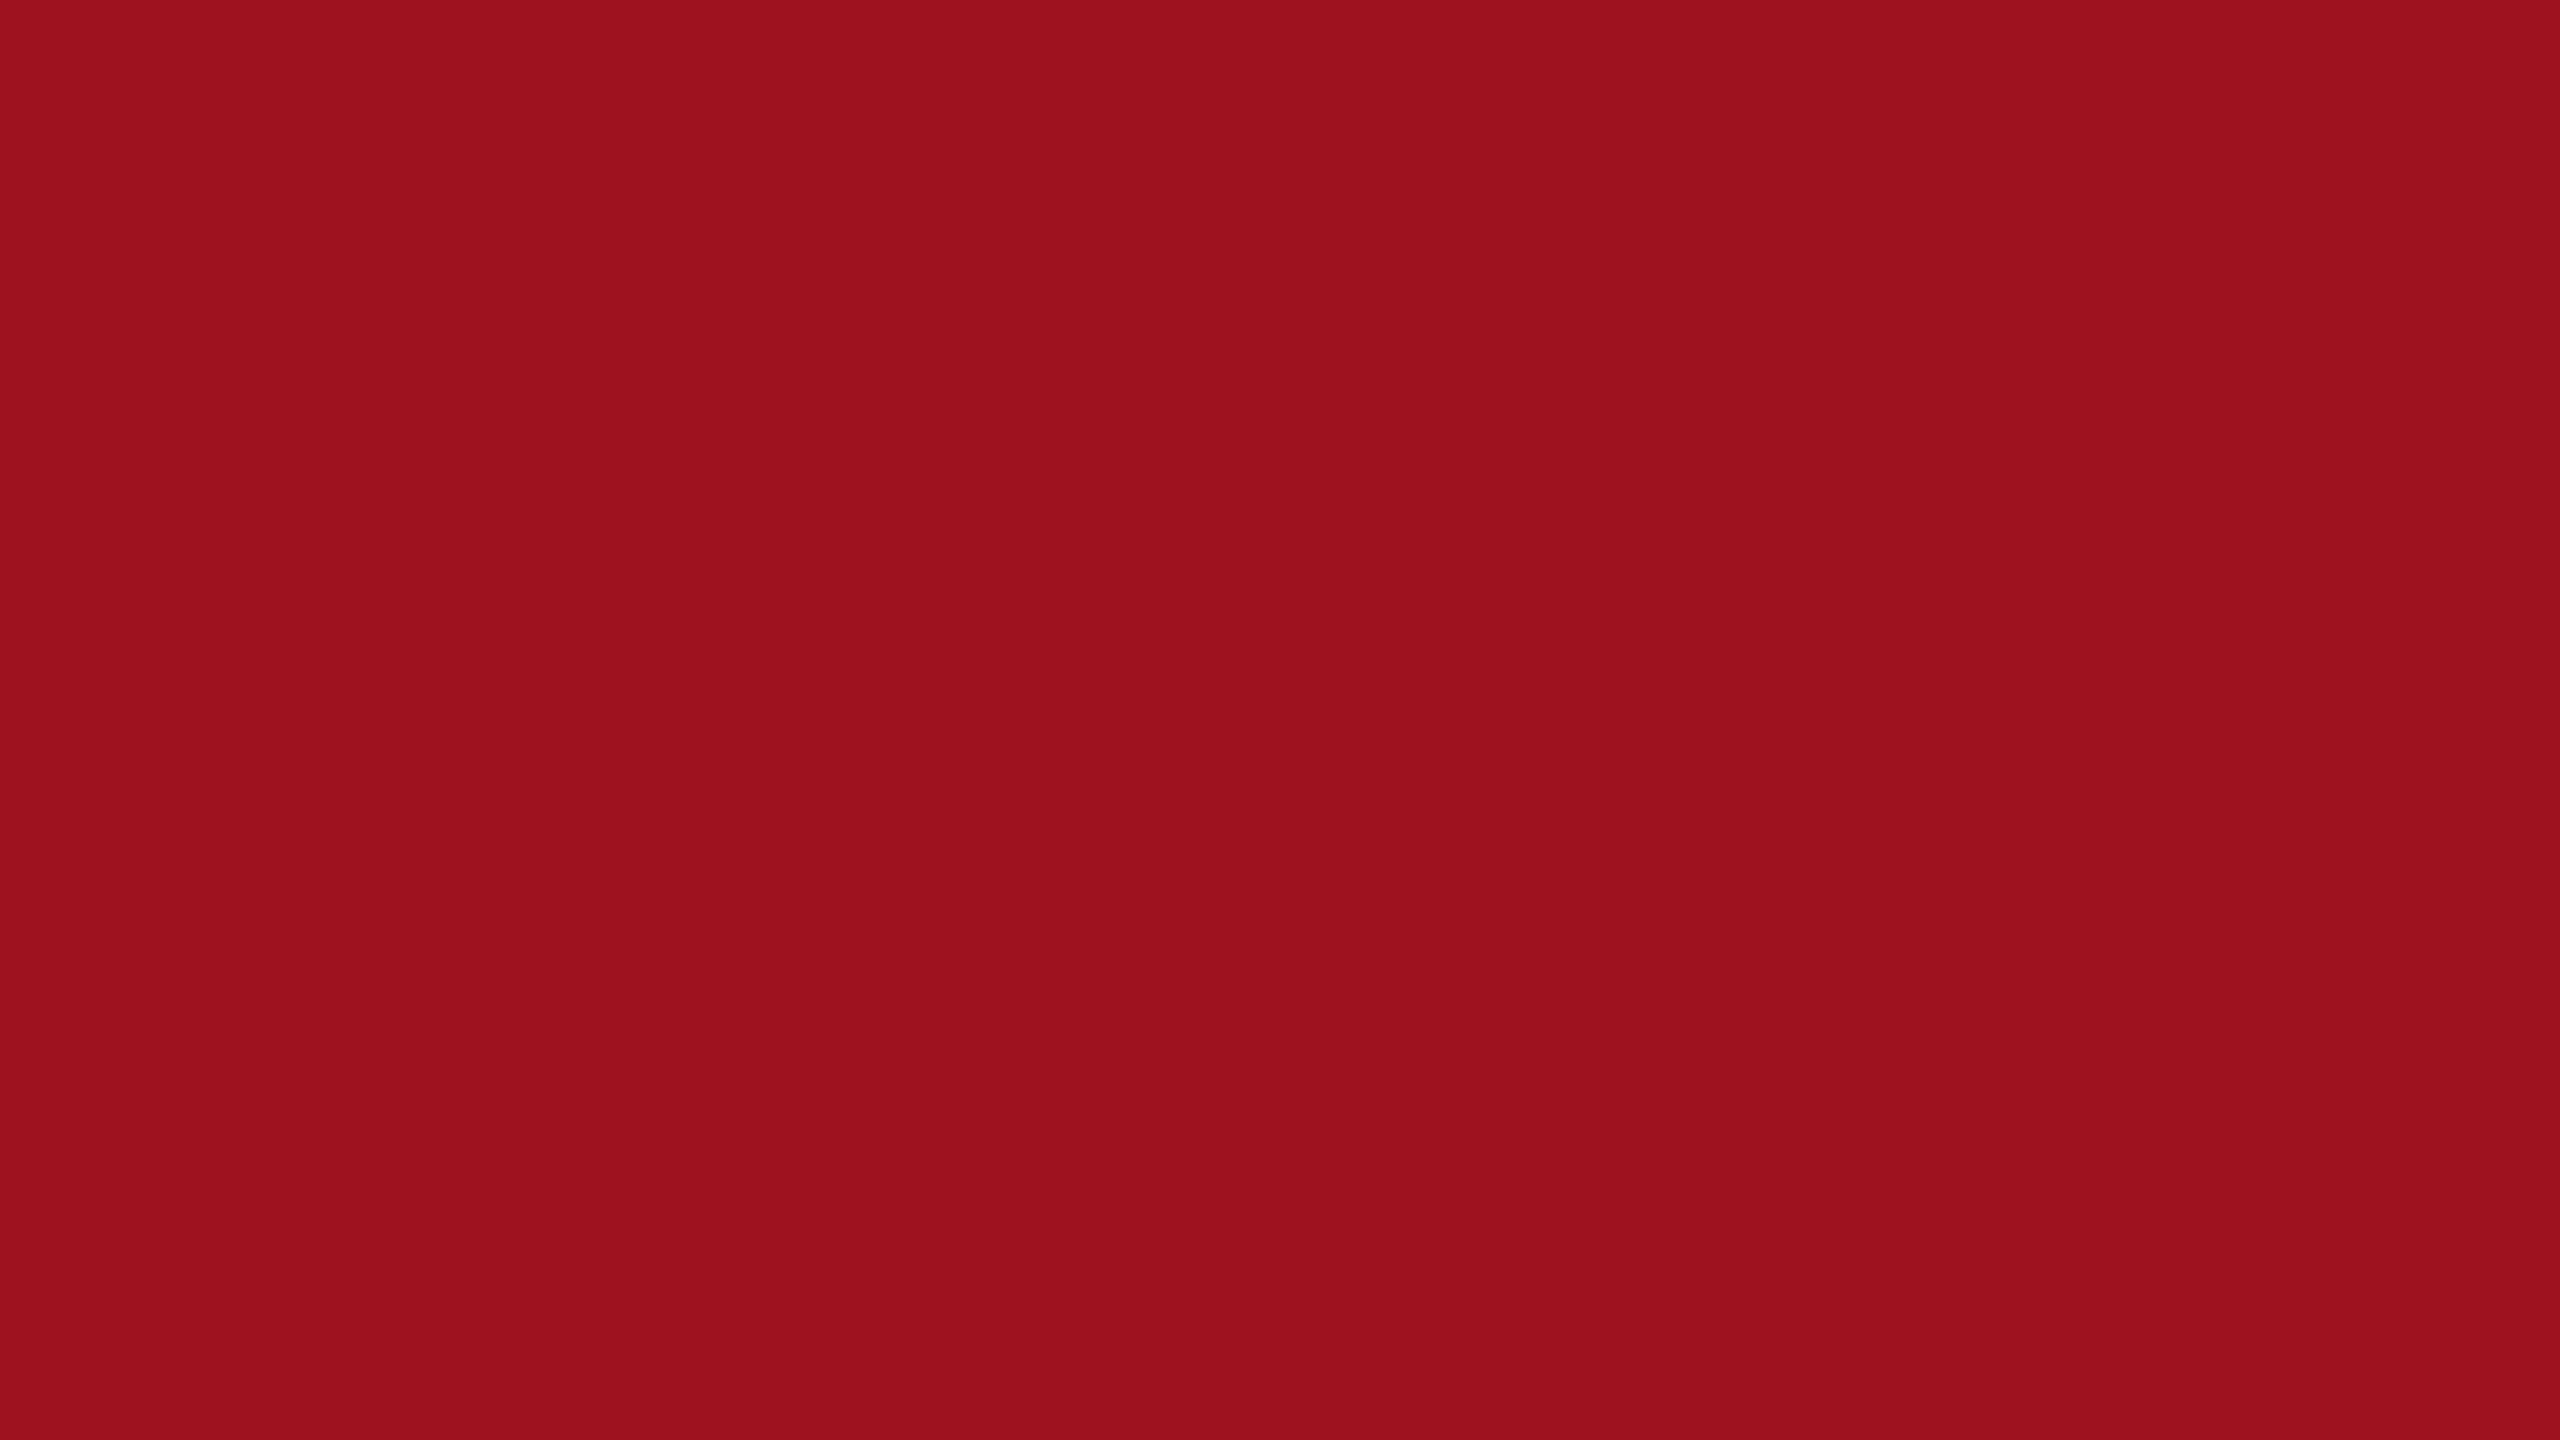 2560x1440 Ruby Red Solid Color Background